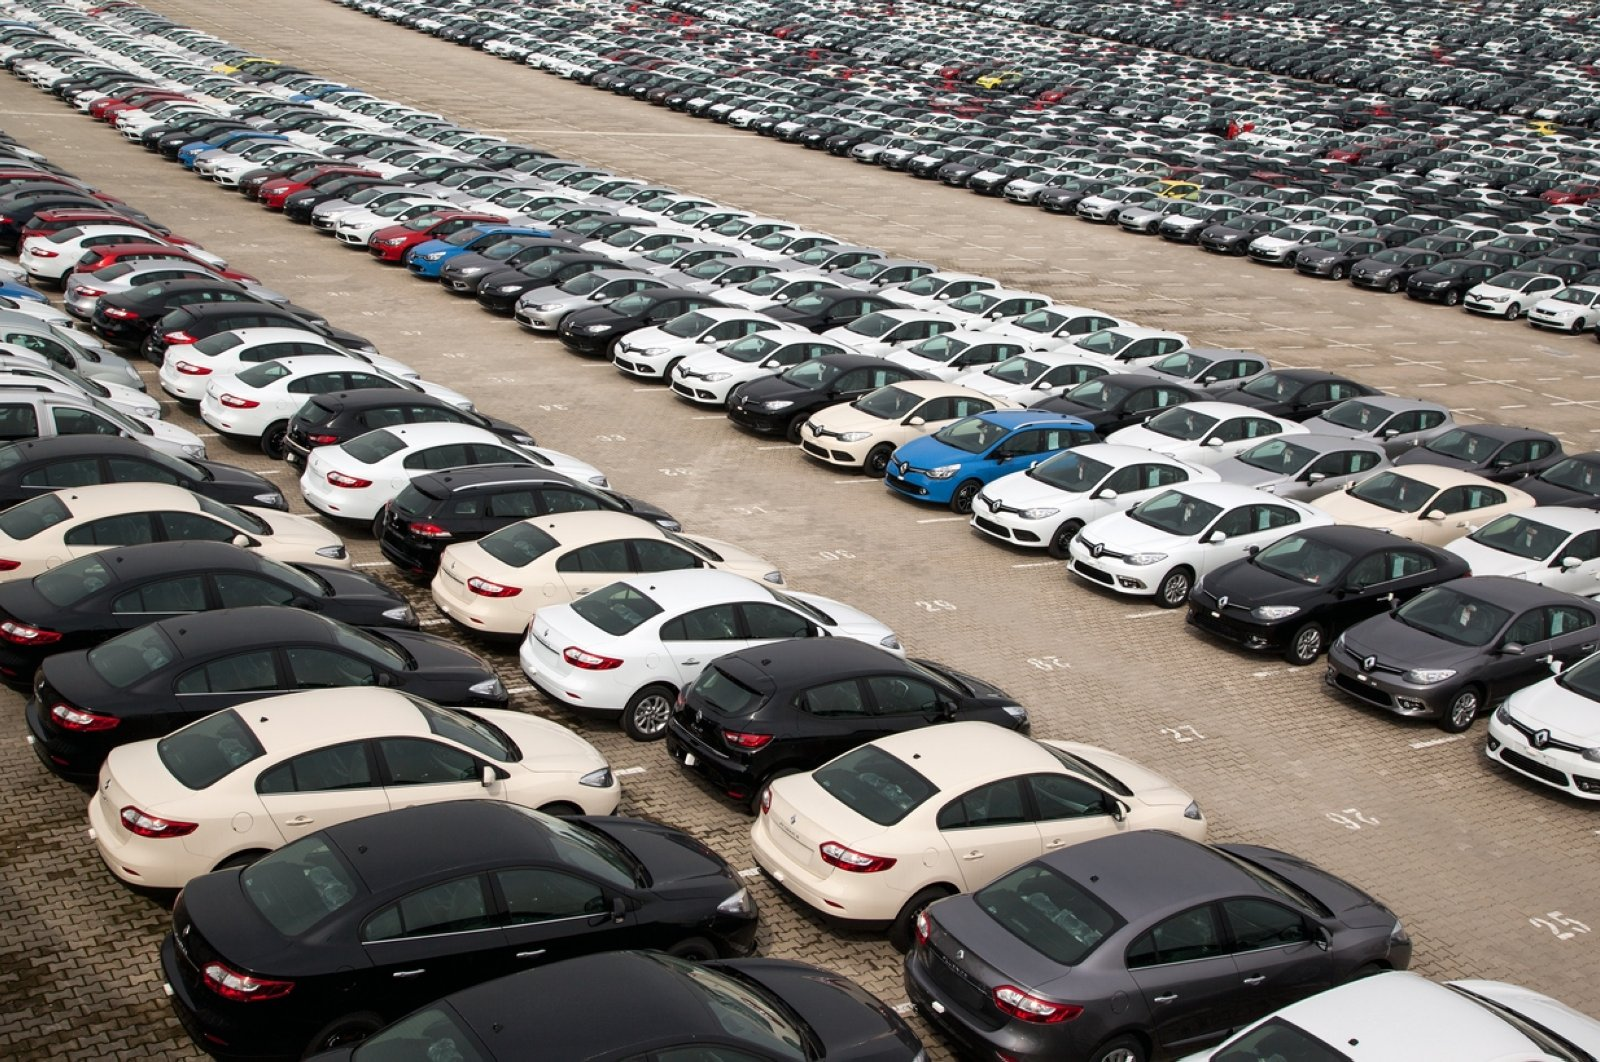 A wide range of vehicles from Renault wait at the Renault Plant, Bursa province, northwestern Turkey, March 3, 2013. (iStock Photo)